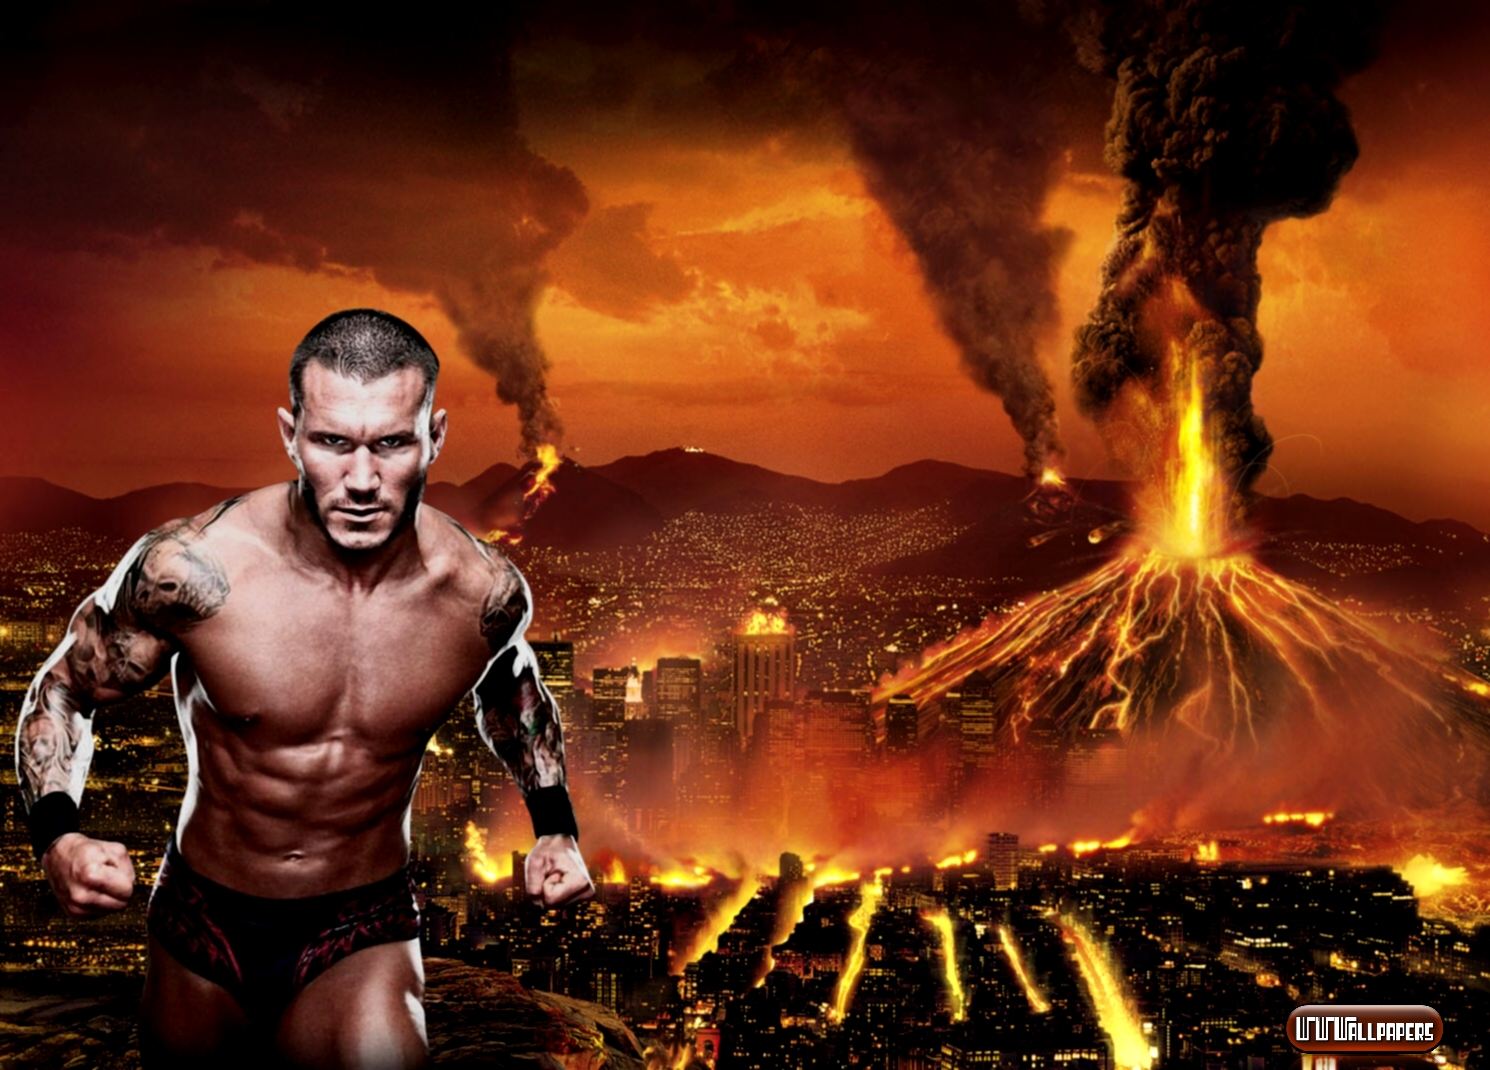 Randy Orton Hd Wallpapers Extra High Definition